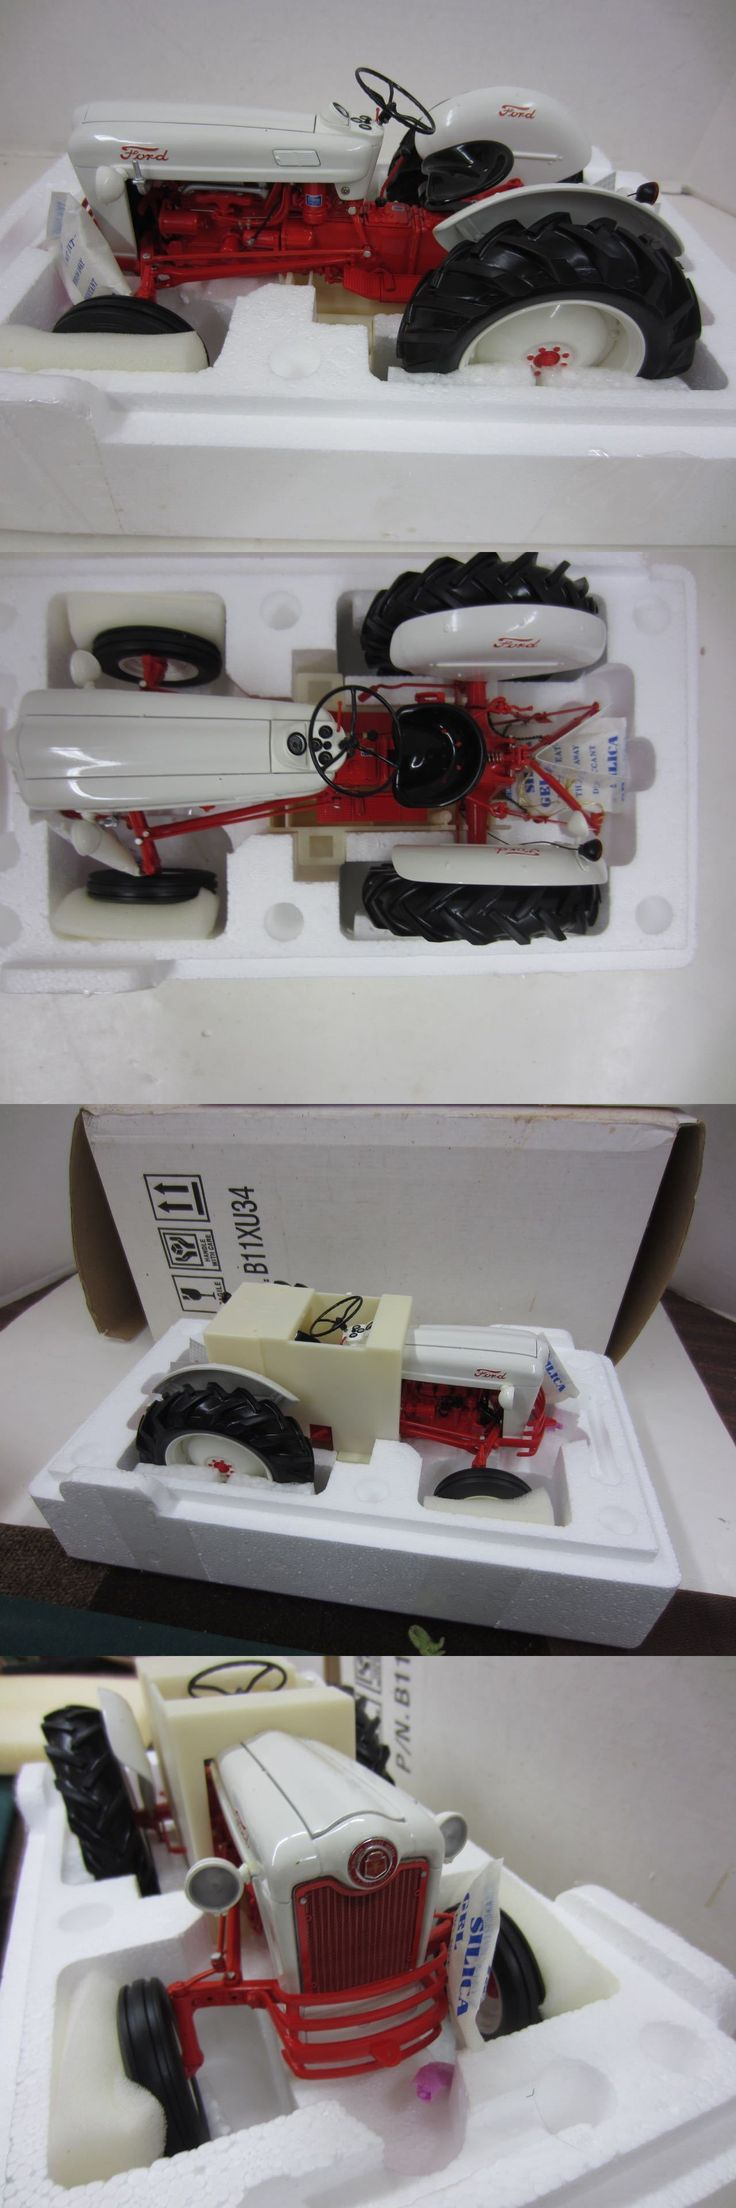 Contemporary Manufacture Franklin Mint 1953 Ford Jubilee Tractor 1 12 Scale Die